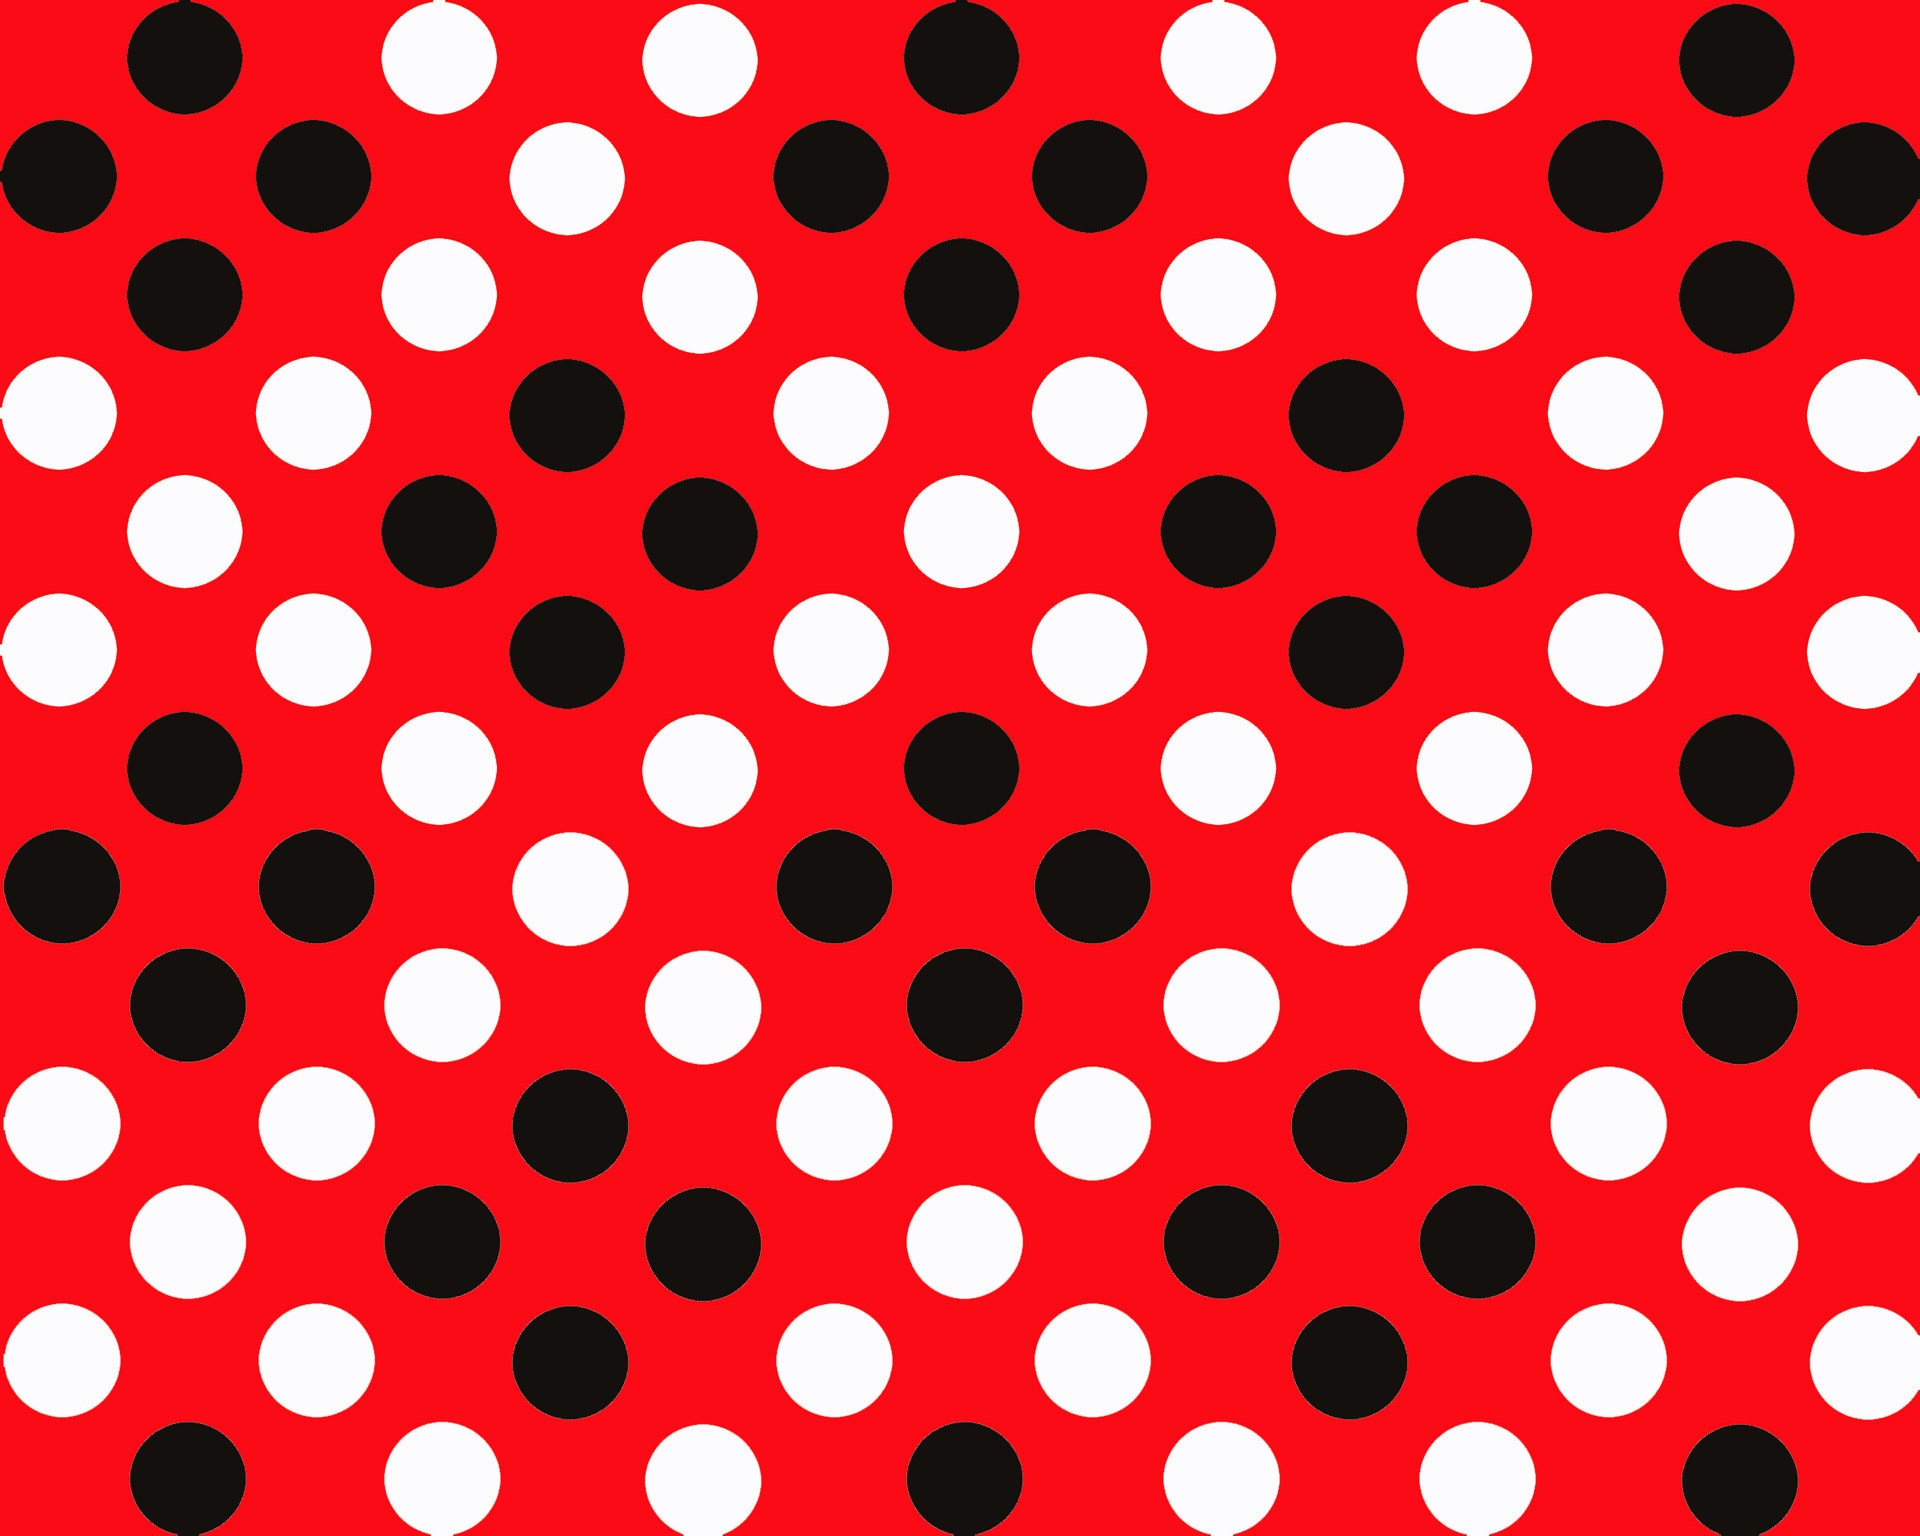 1920x1536 Black And White Polka Dot Wallpaper - Wallpapers HD Fine